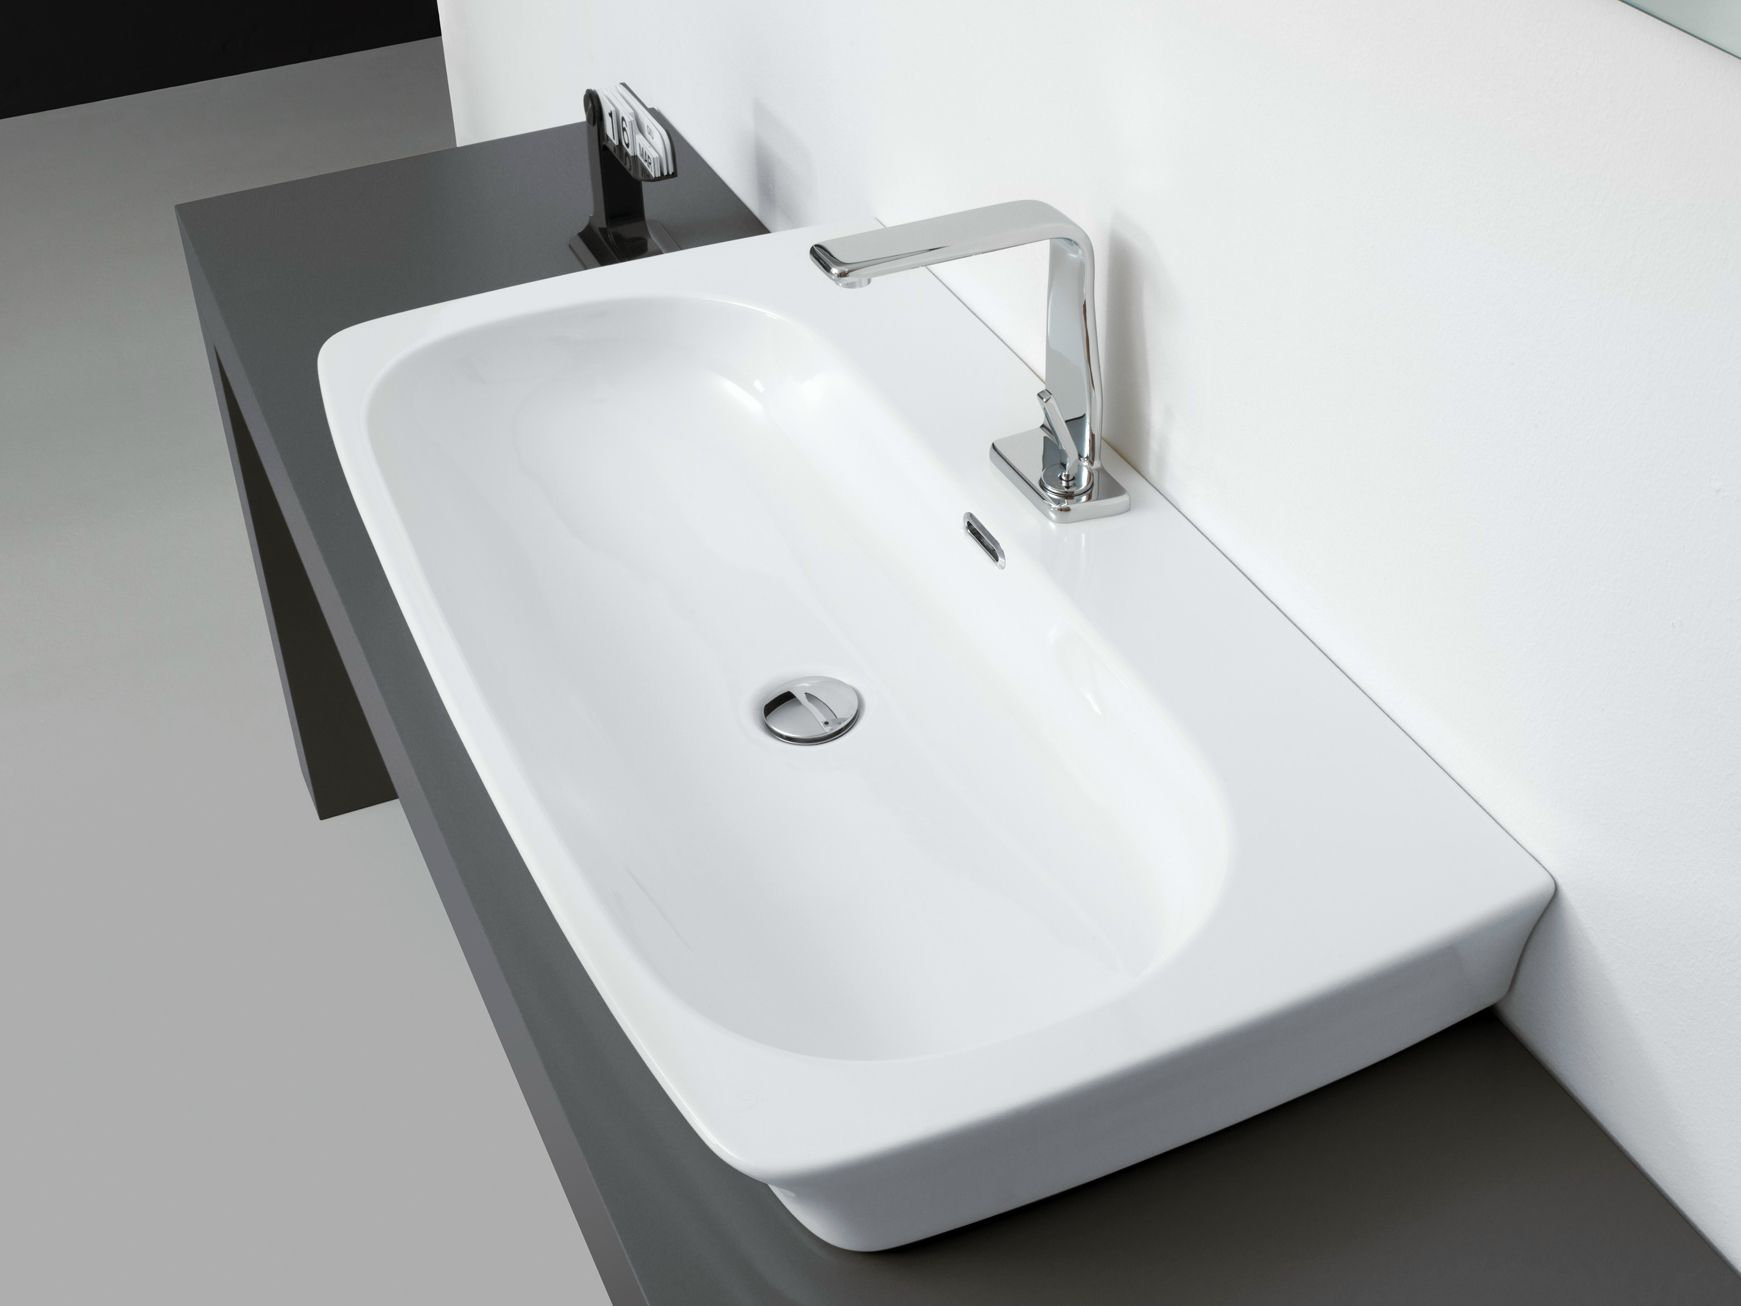 LAVABO singolo by #NEWFORM #washbasins #bath #design #white ...